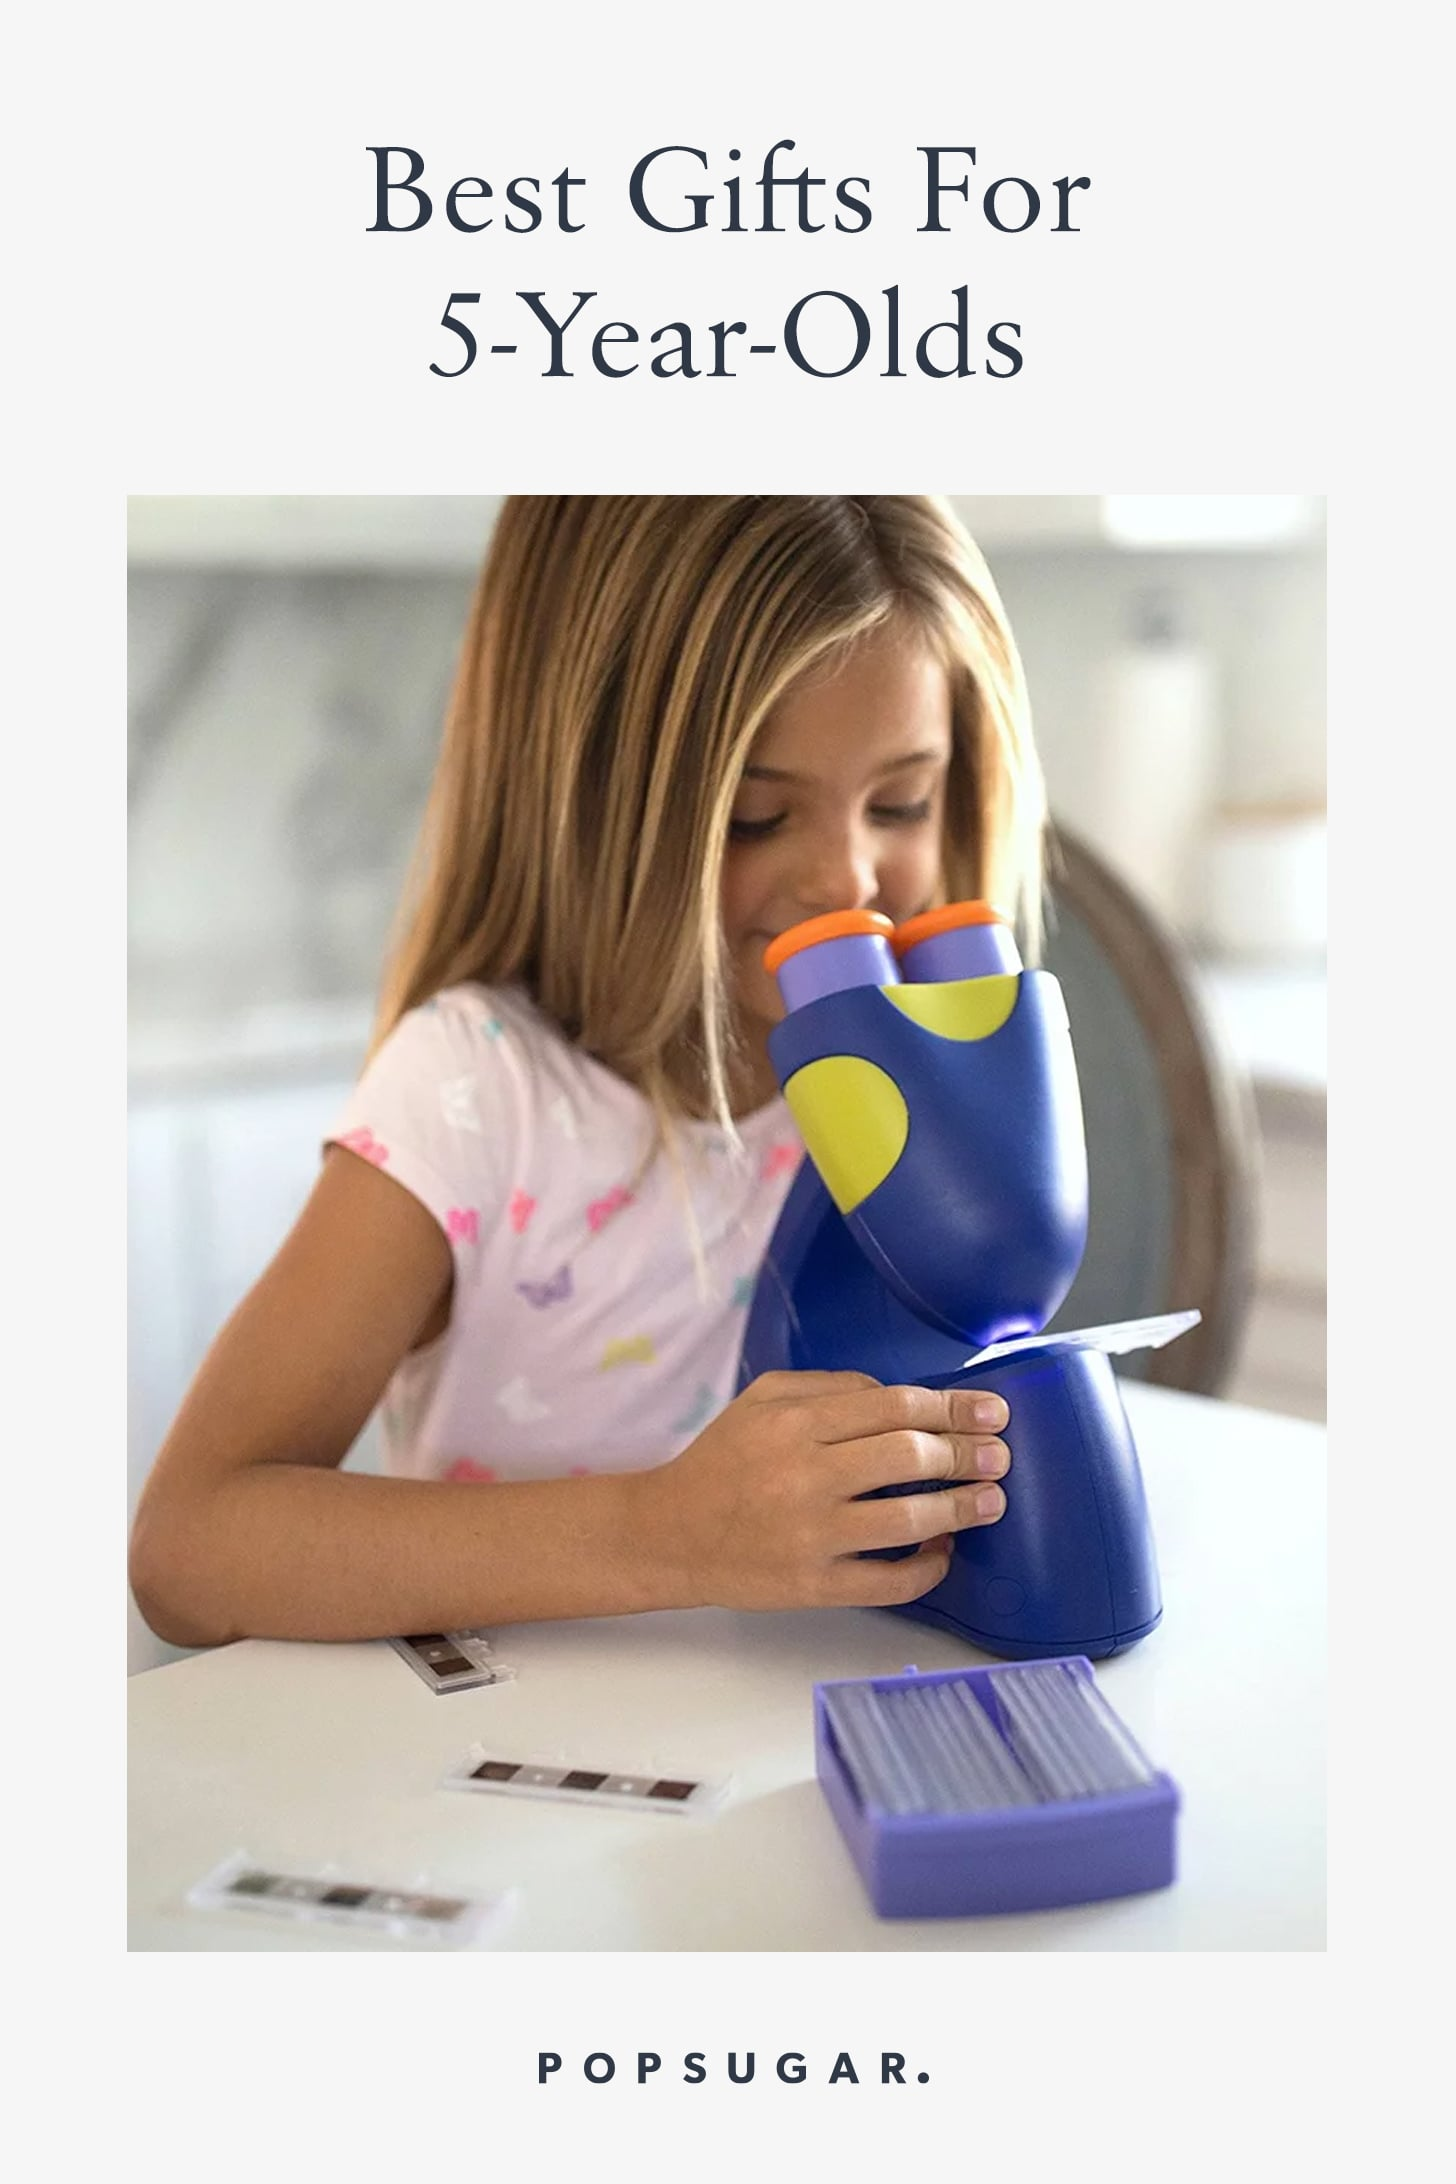 Christmas 2021 Todler Gift Ideas The Best Toys And Gift Ideas For A 5 Year Old In 2021 Popsugar Family